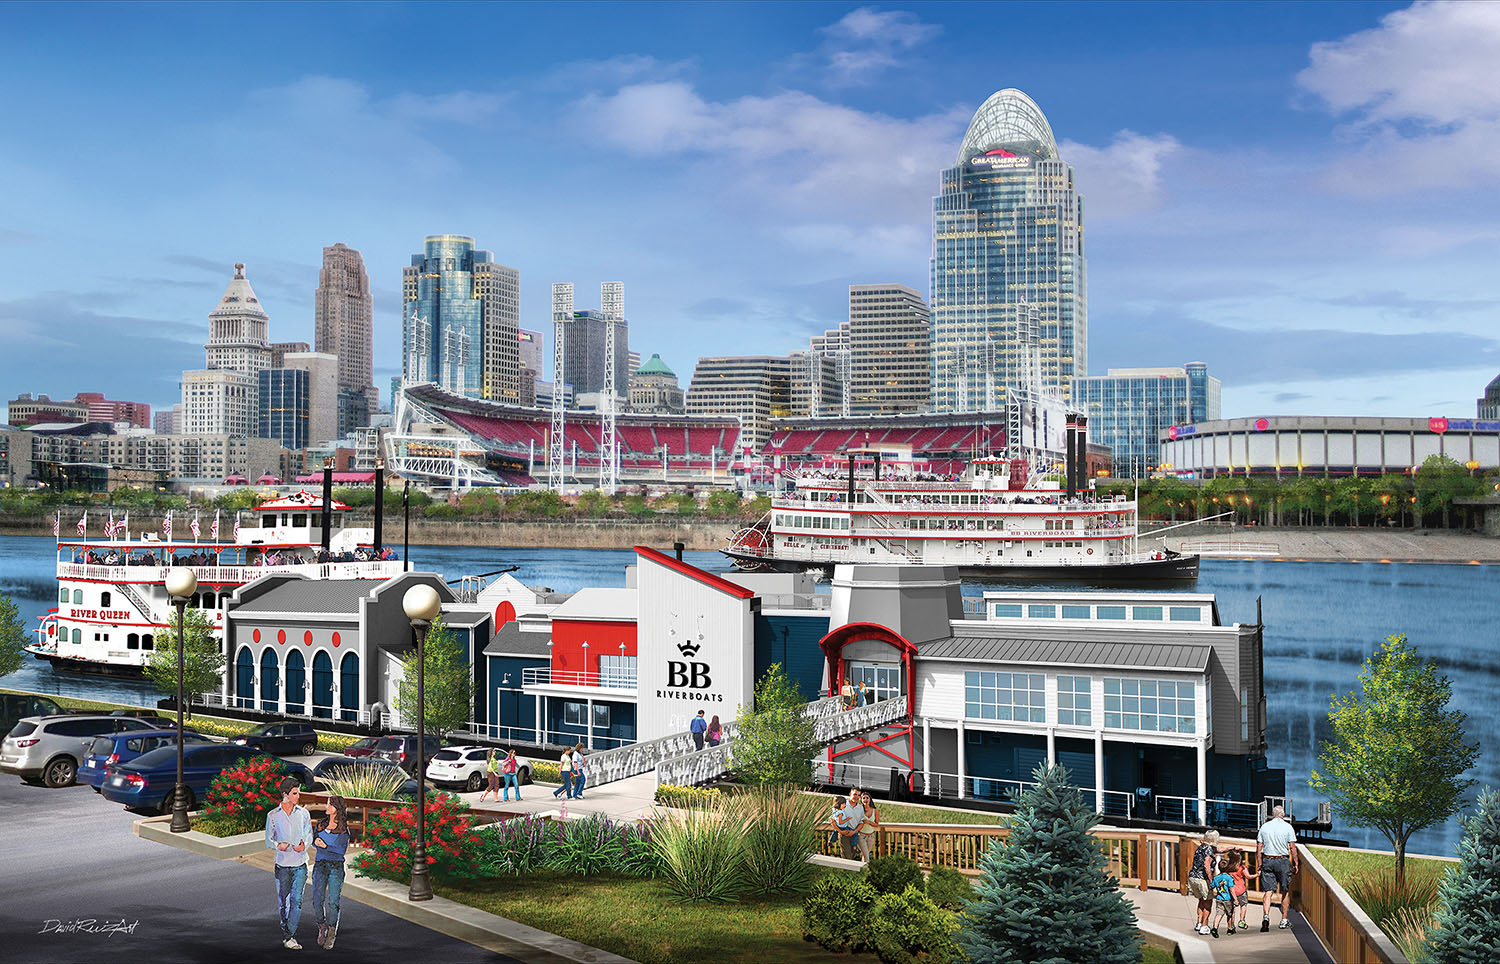 An artist's rendering of what the new BB Riverboats dock facility will look like once it's completed in November.